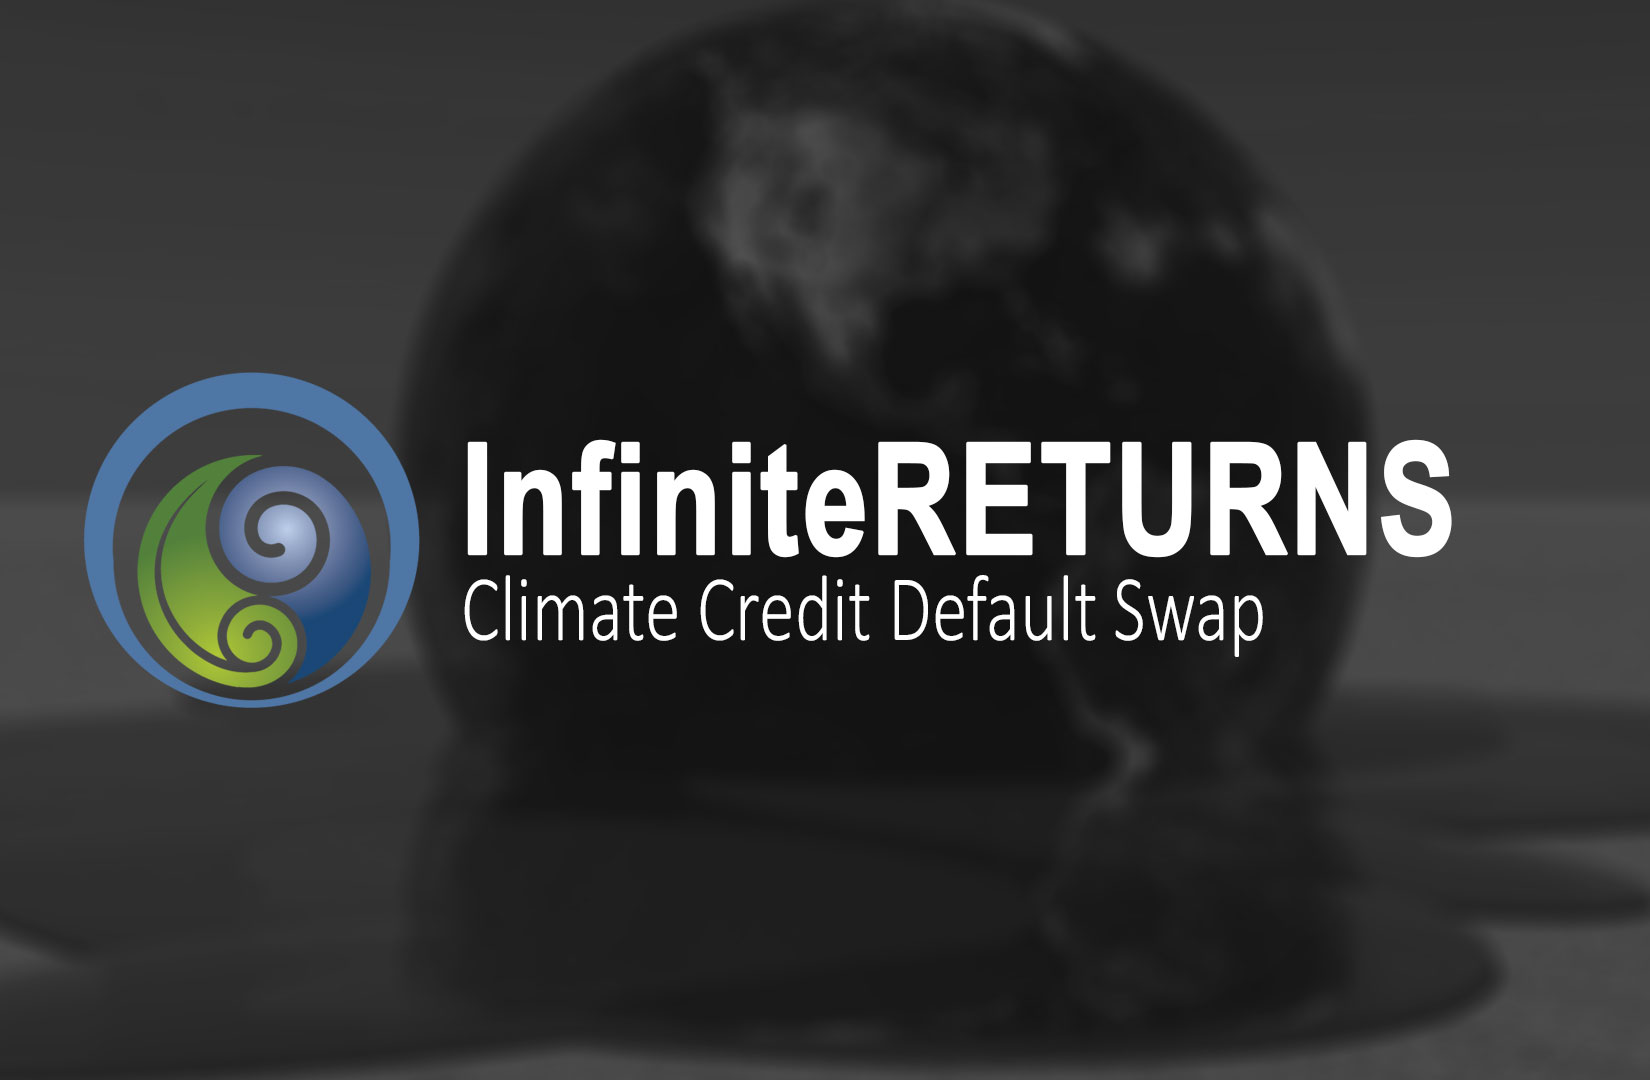 InfiniteRETURNS Climate Credit Default Swap, by EnVision Corporation | Environmental Finance Products